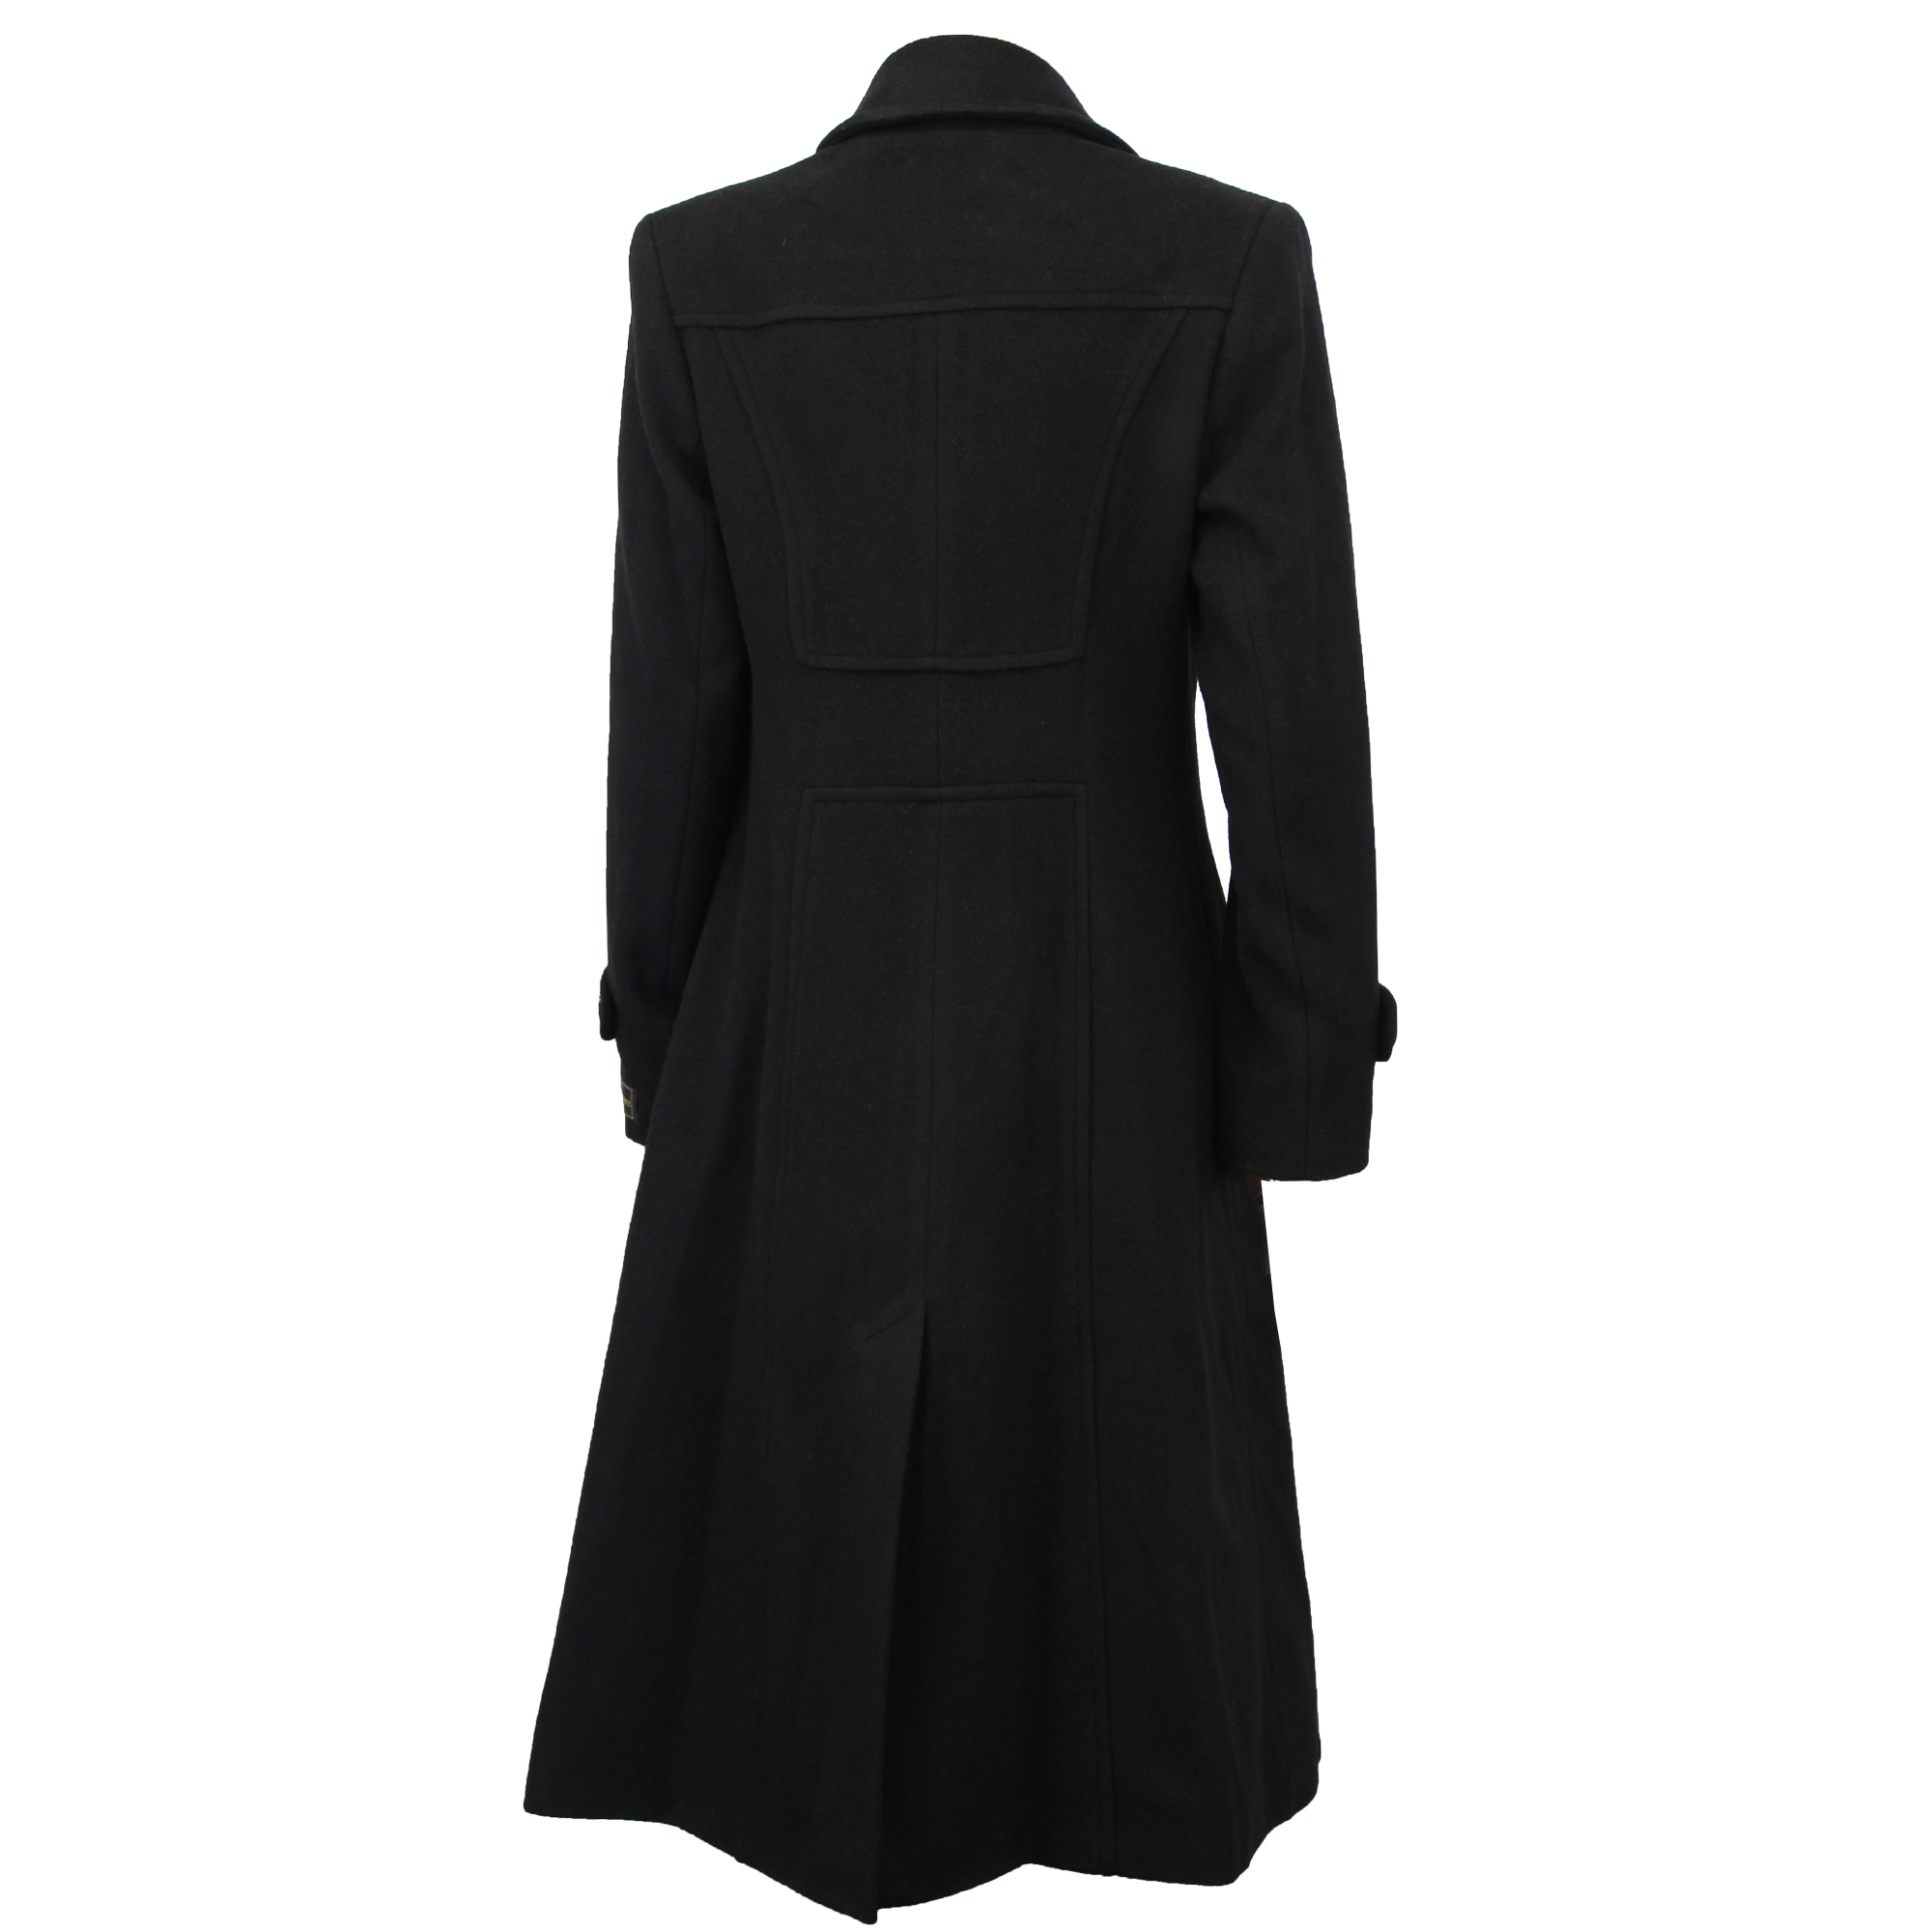 Ladies-Wool-Cashmere-Coat-Women-Jacket-Outerwear-Trench-Overcoat-Winter-Lined thumbnail 14